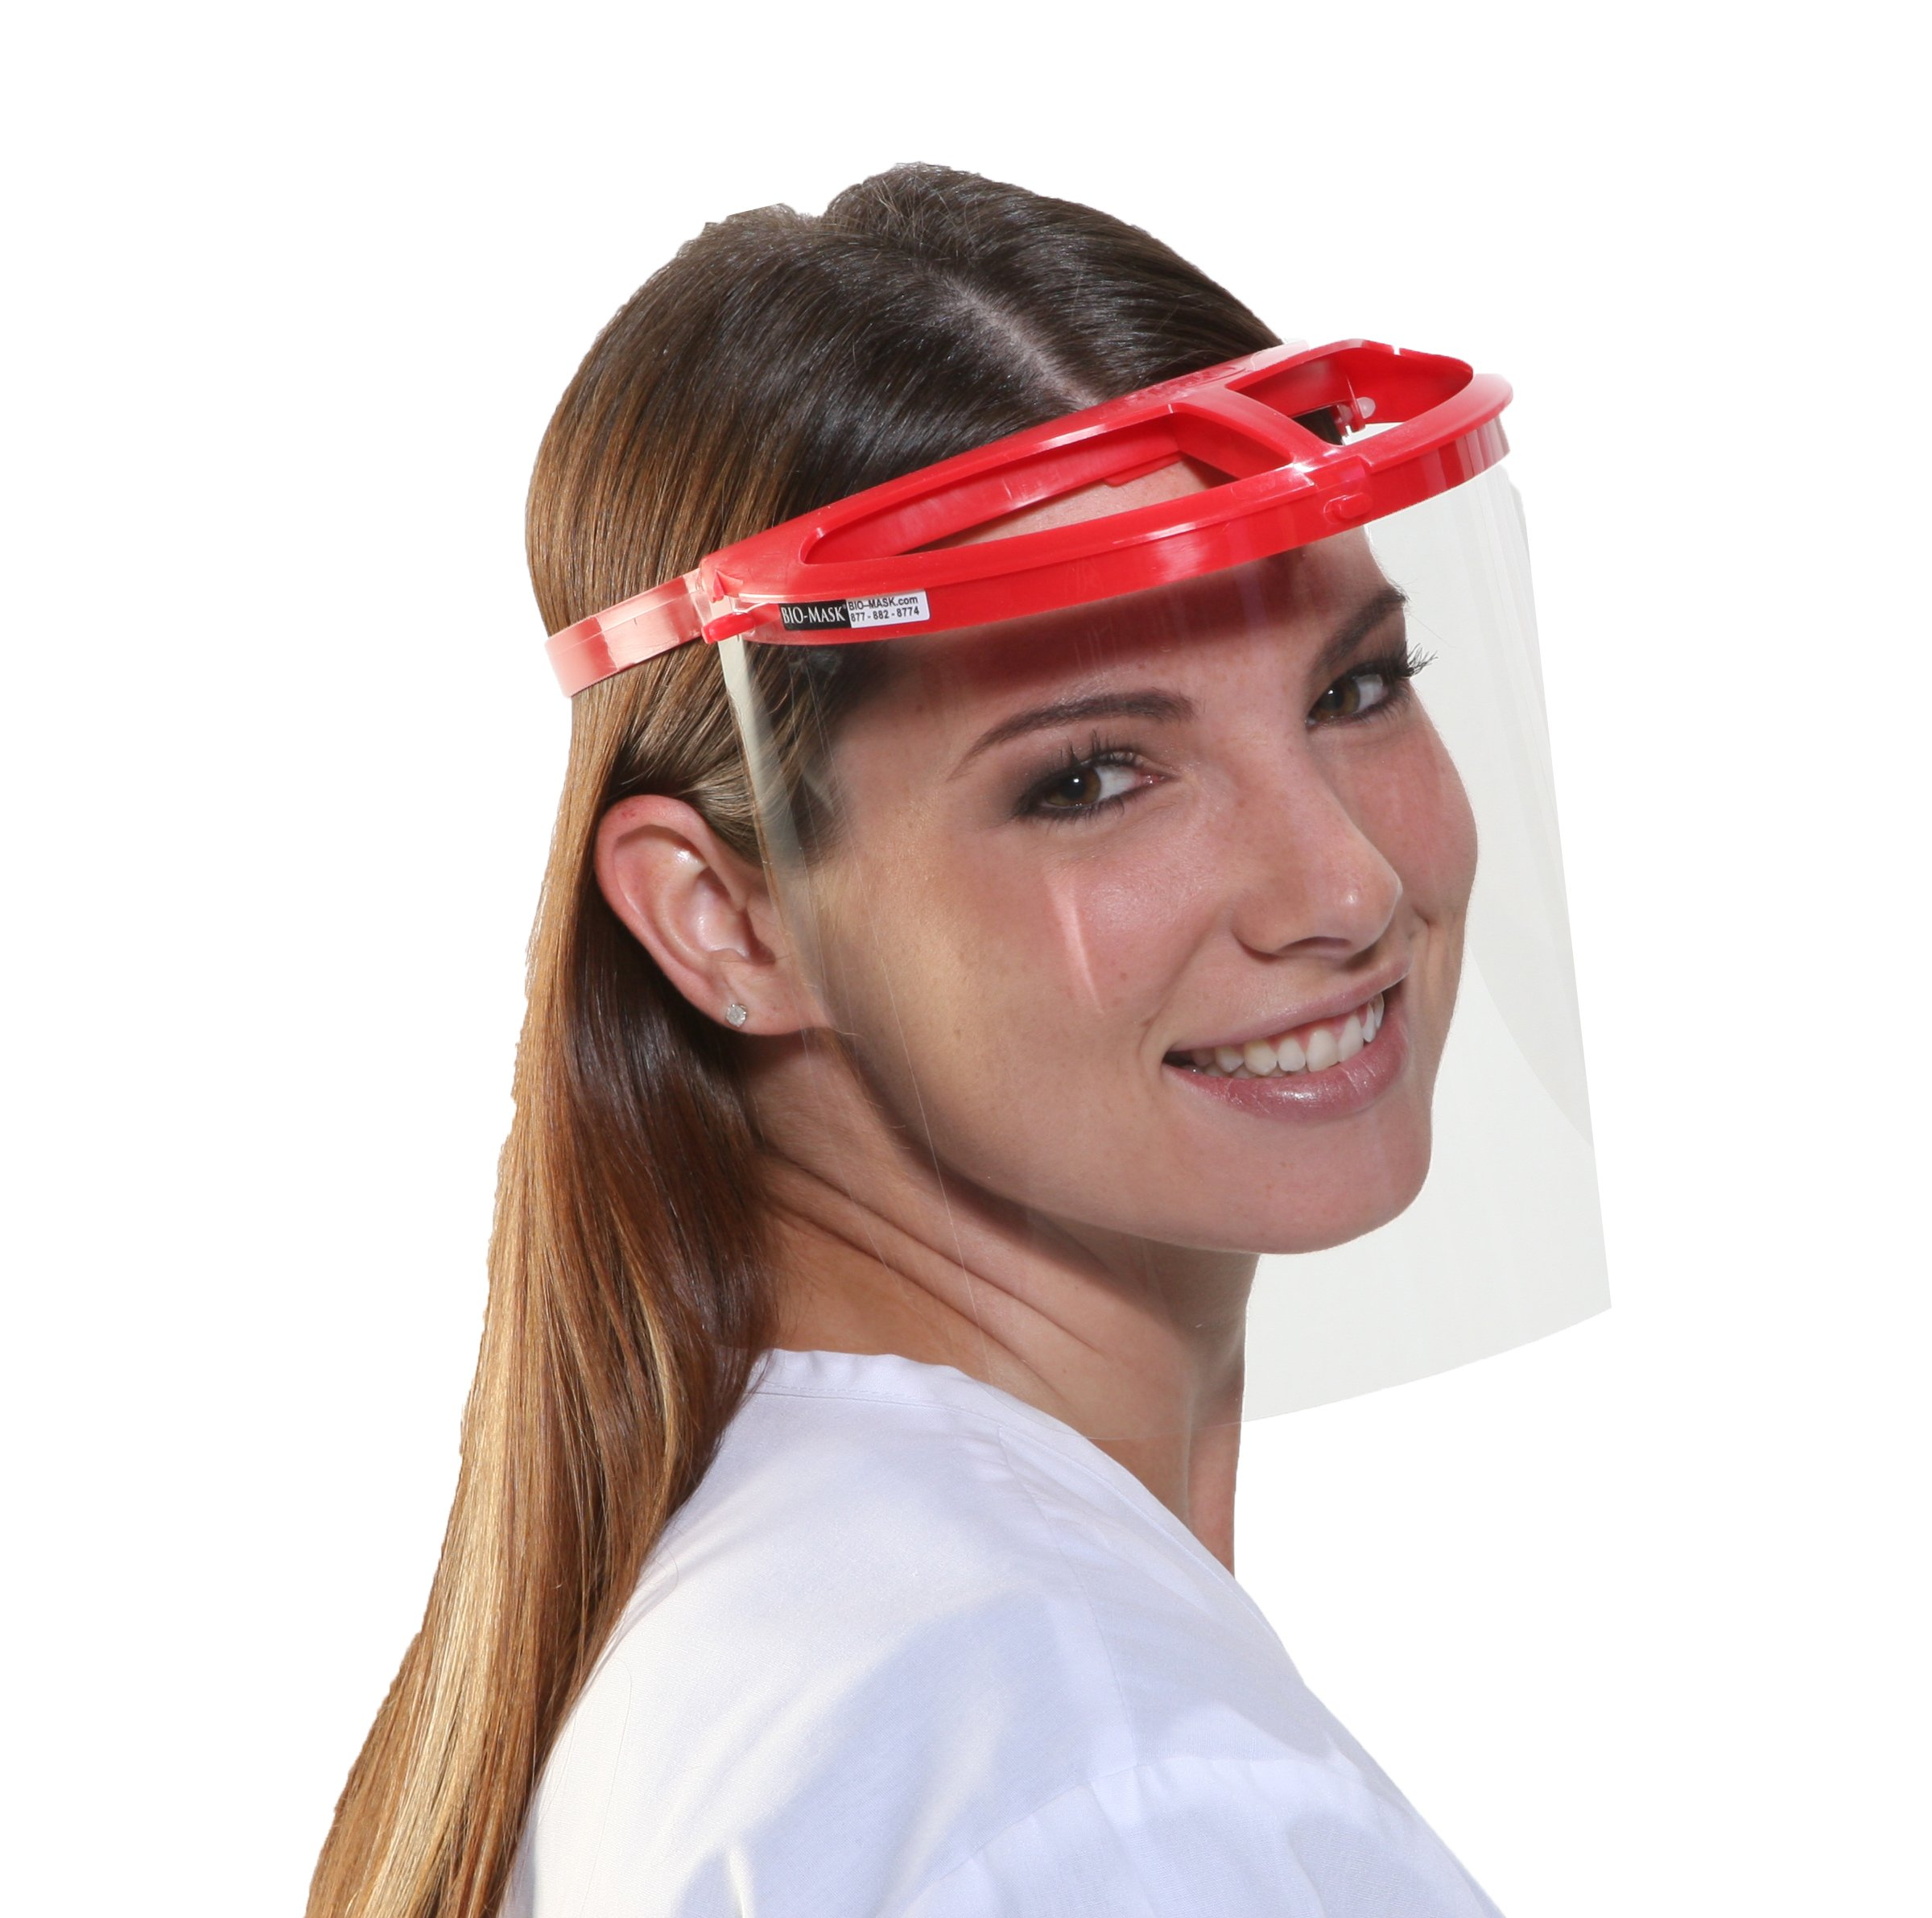 Bio-Mask Face Shield With 10 Shields (Red) by Bio-Mask (Image #3)